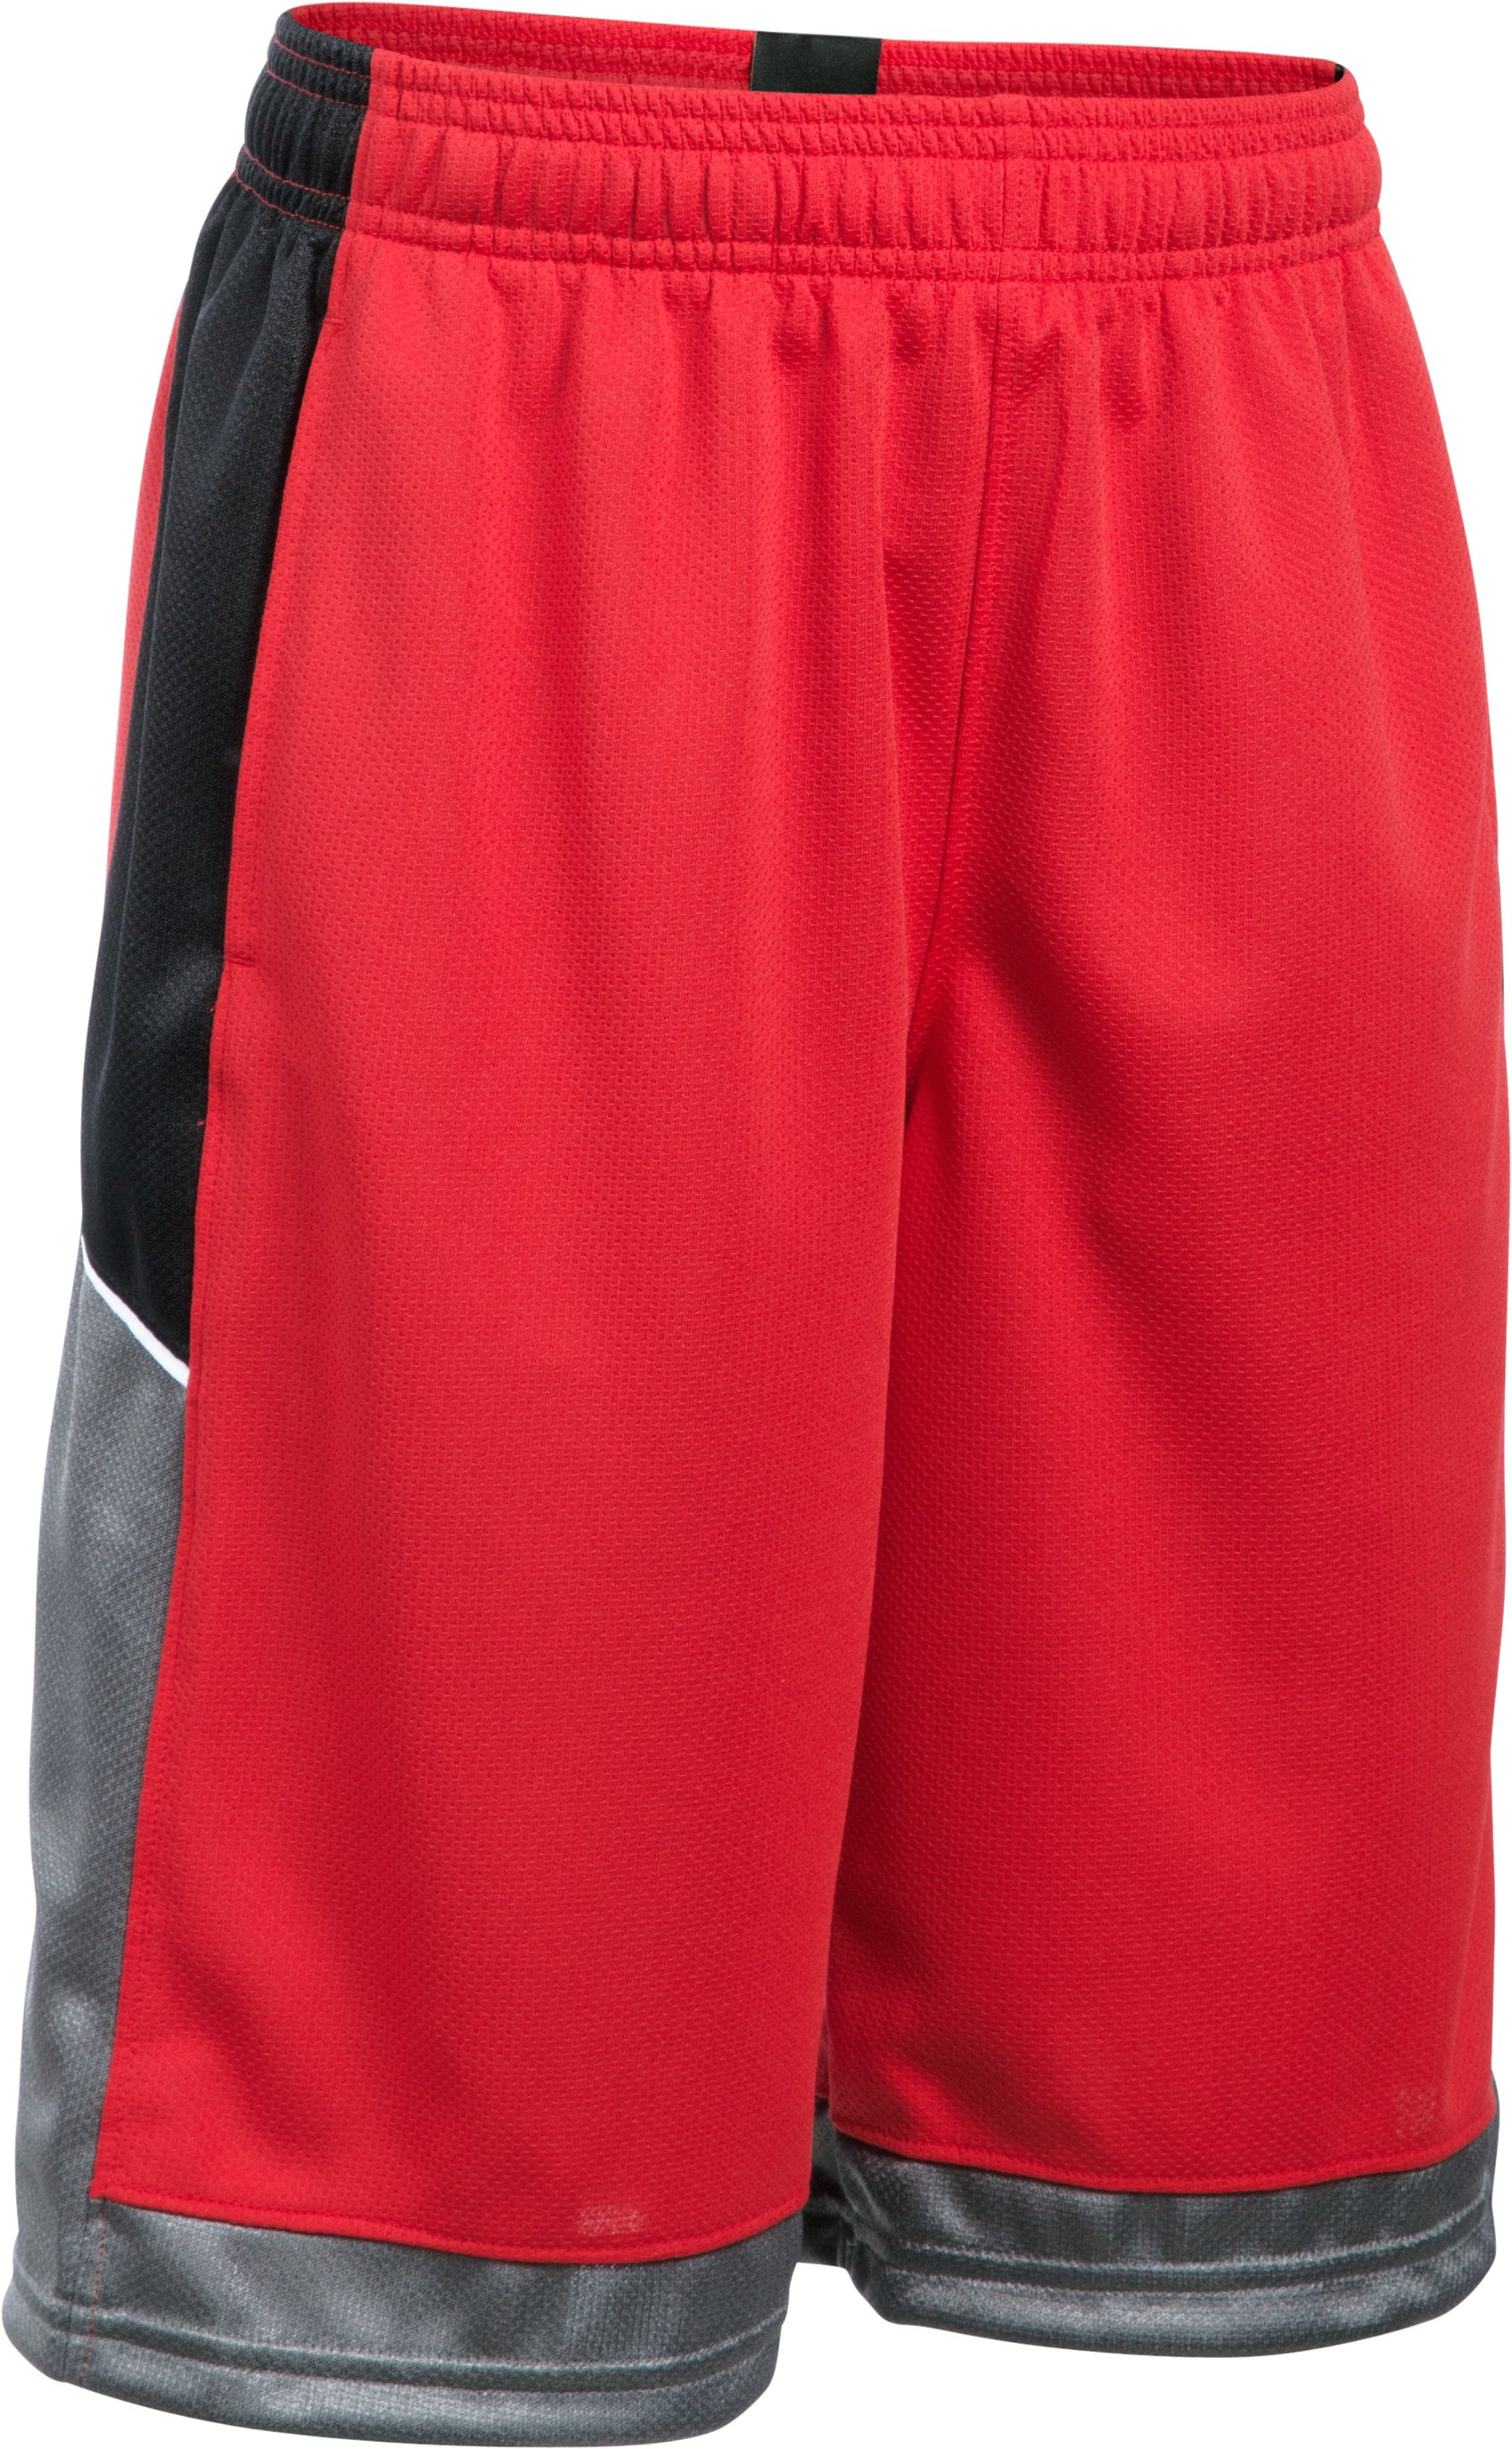 Boys' UA Baseline Basketball Shorts, Red